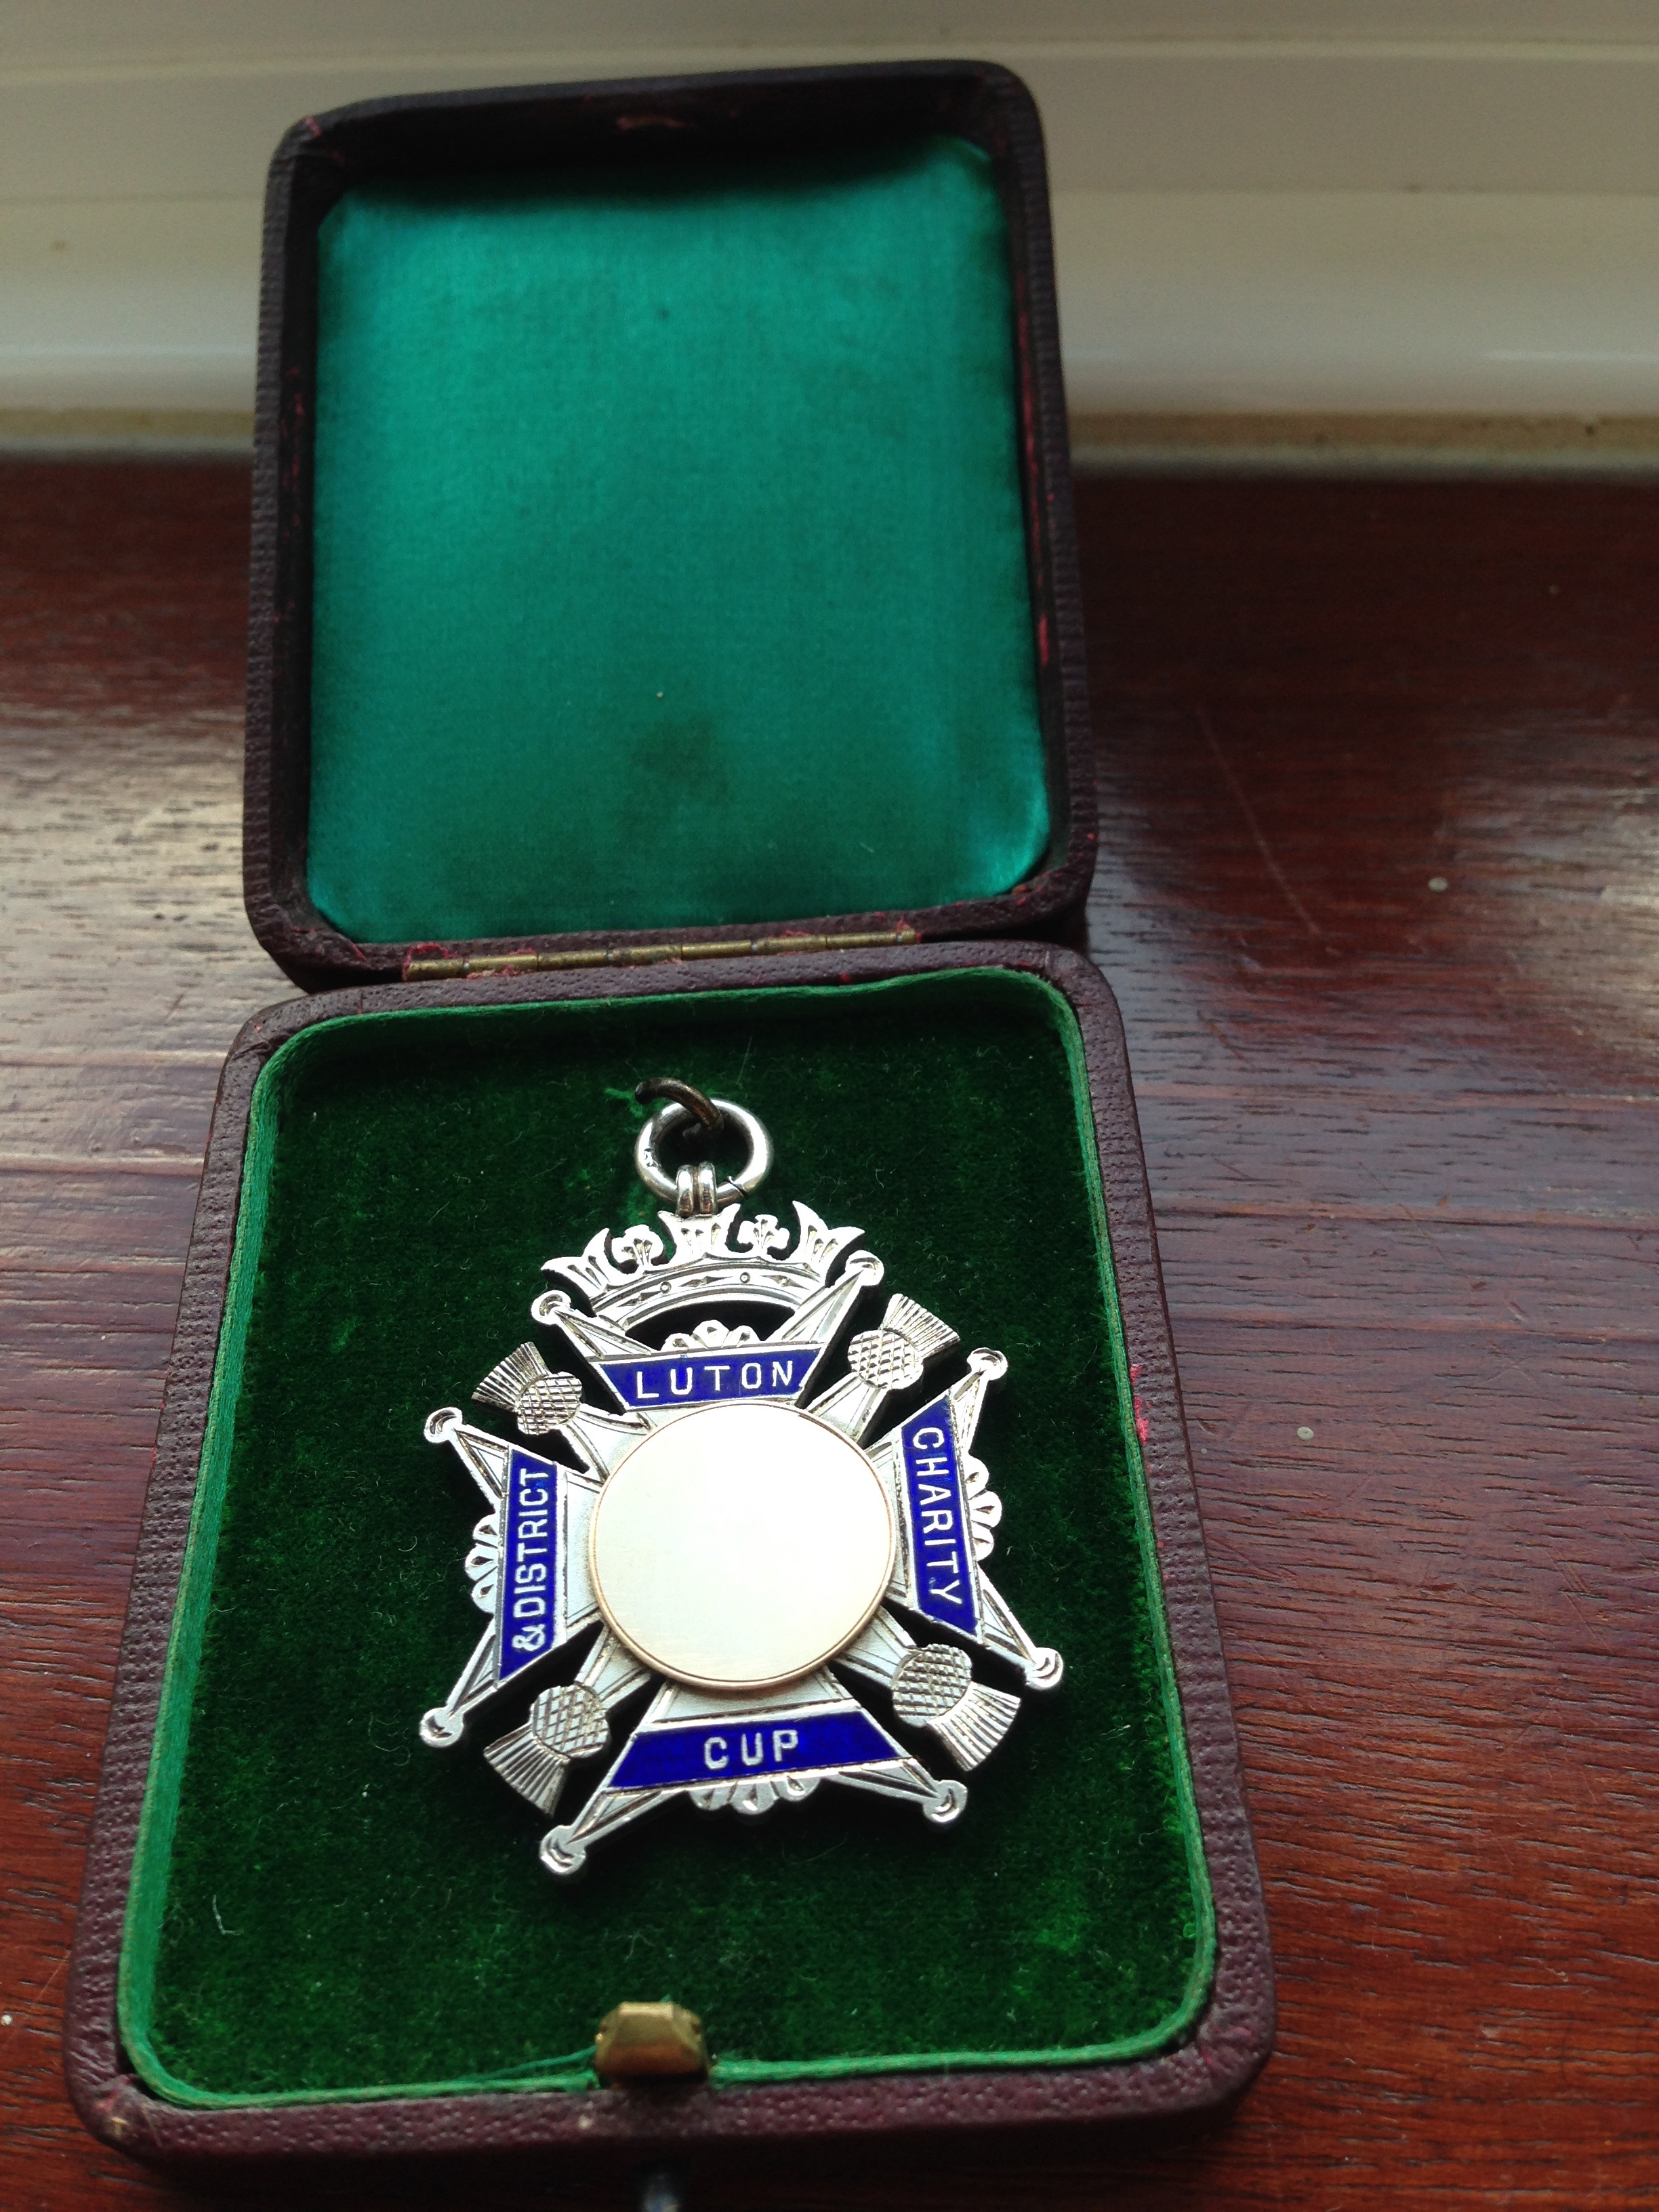 Luton Charity Cup medal